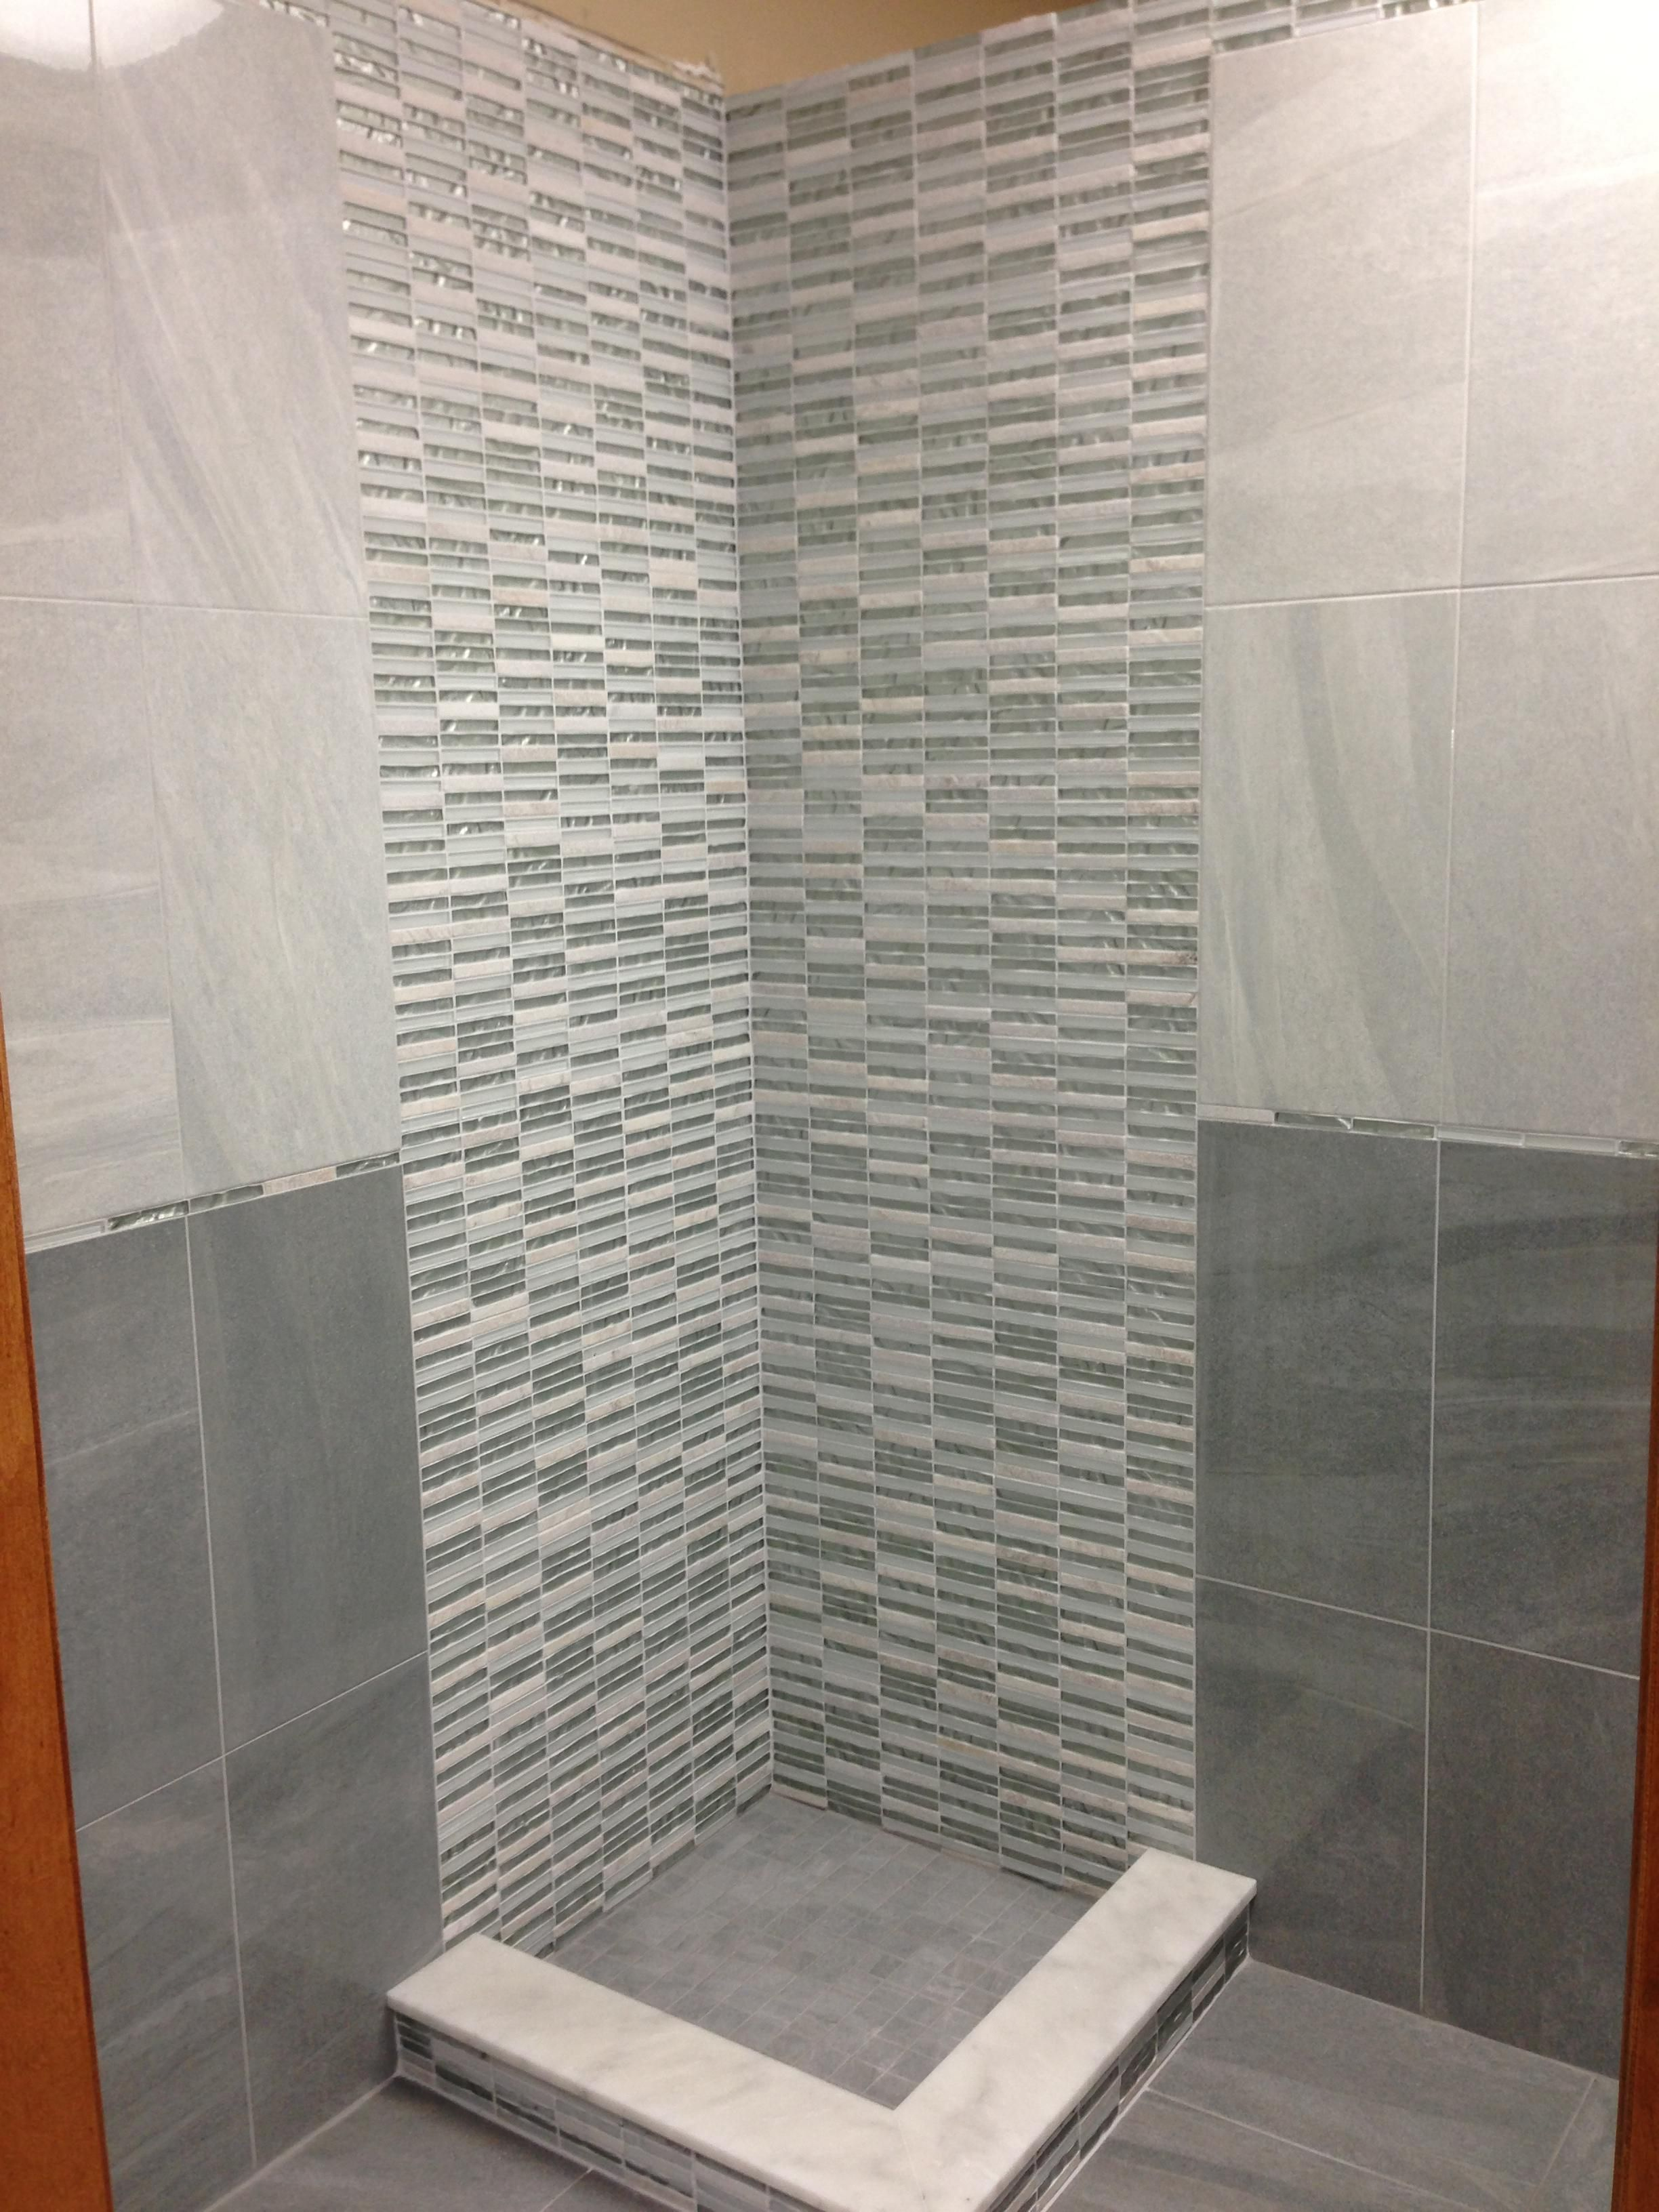 Cool Bathroom Tile Idea With Light 12 X 24 Tiles On Top Of Vertically Aligned Medium